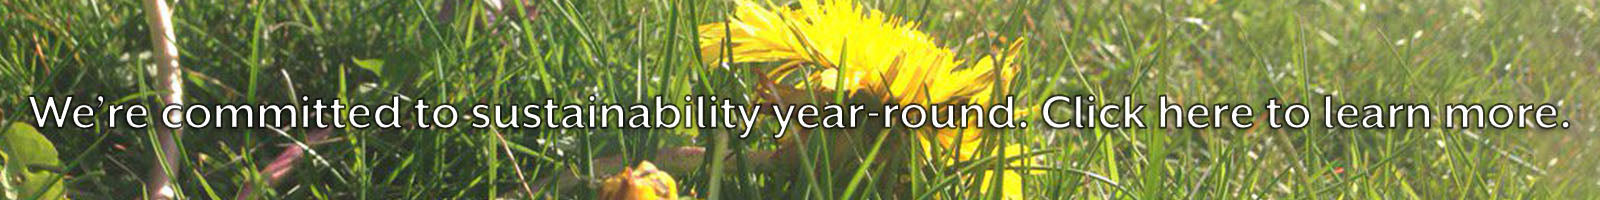 Photo of grass and dandelions with text: We're committed to sustainability year round. Click here to learn more.